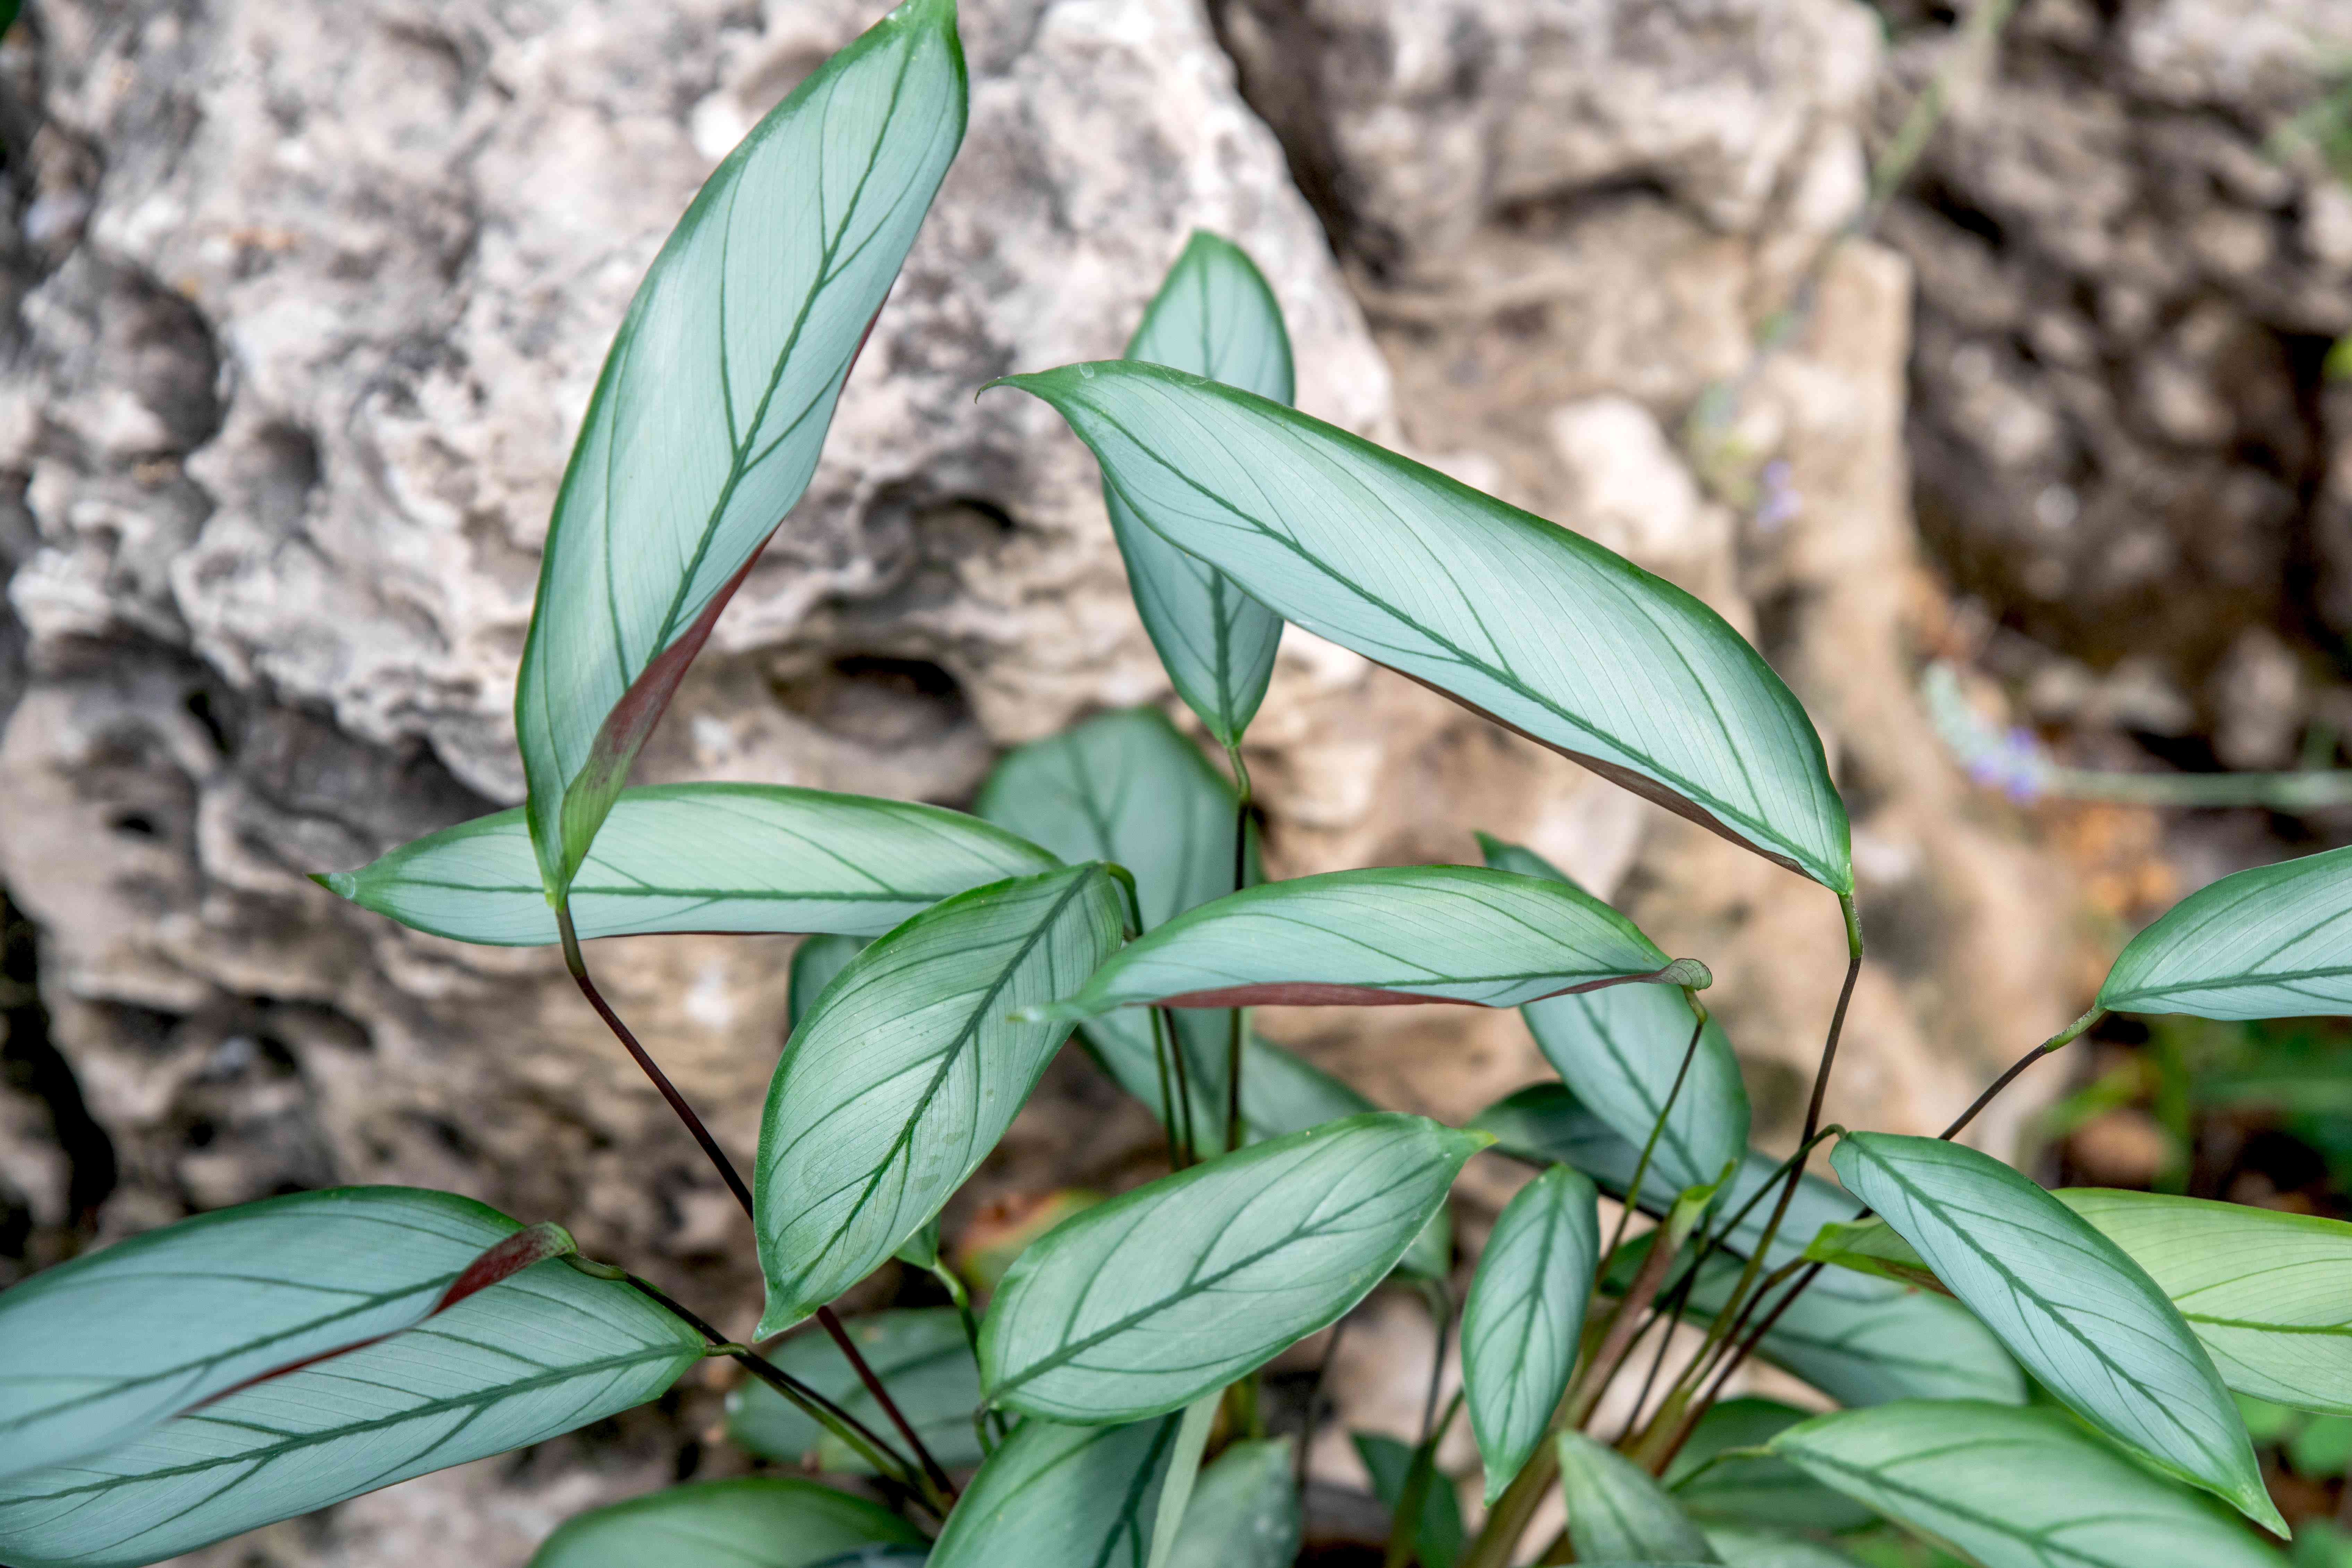 Ctenanthe setosa grey star plant with thick leaves with silvery-green stripes clustered together